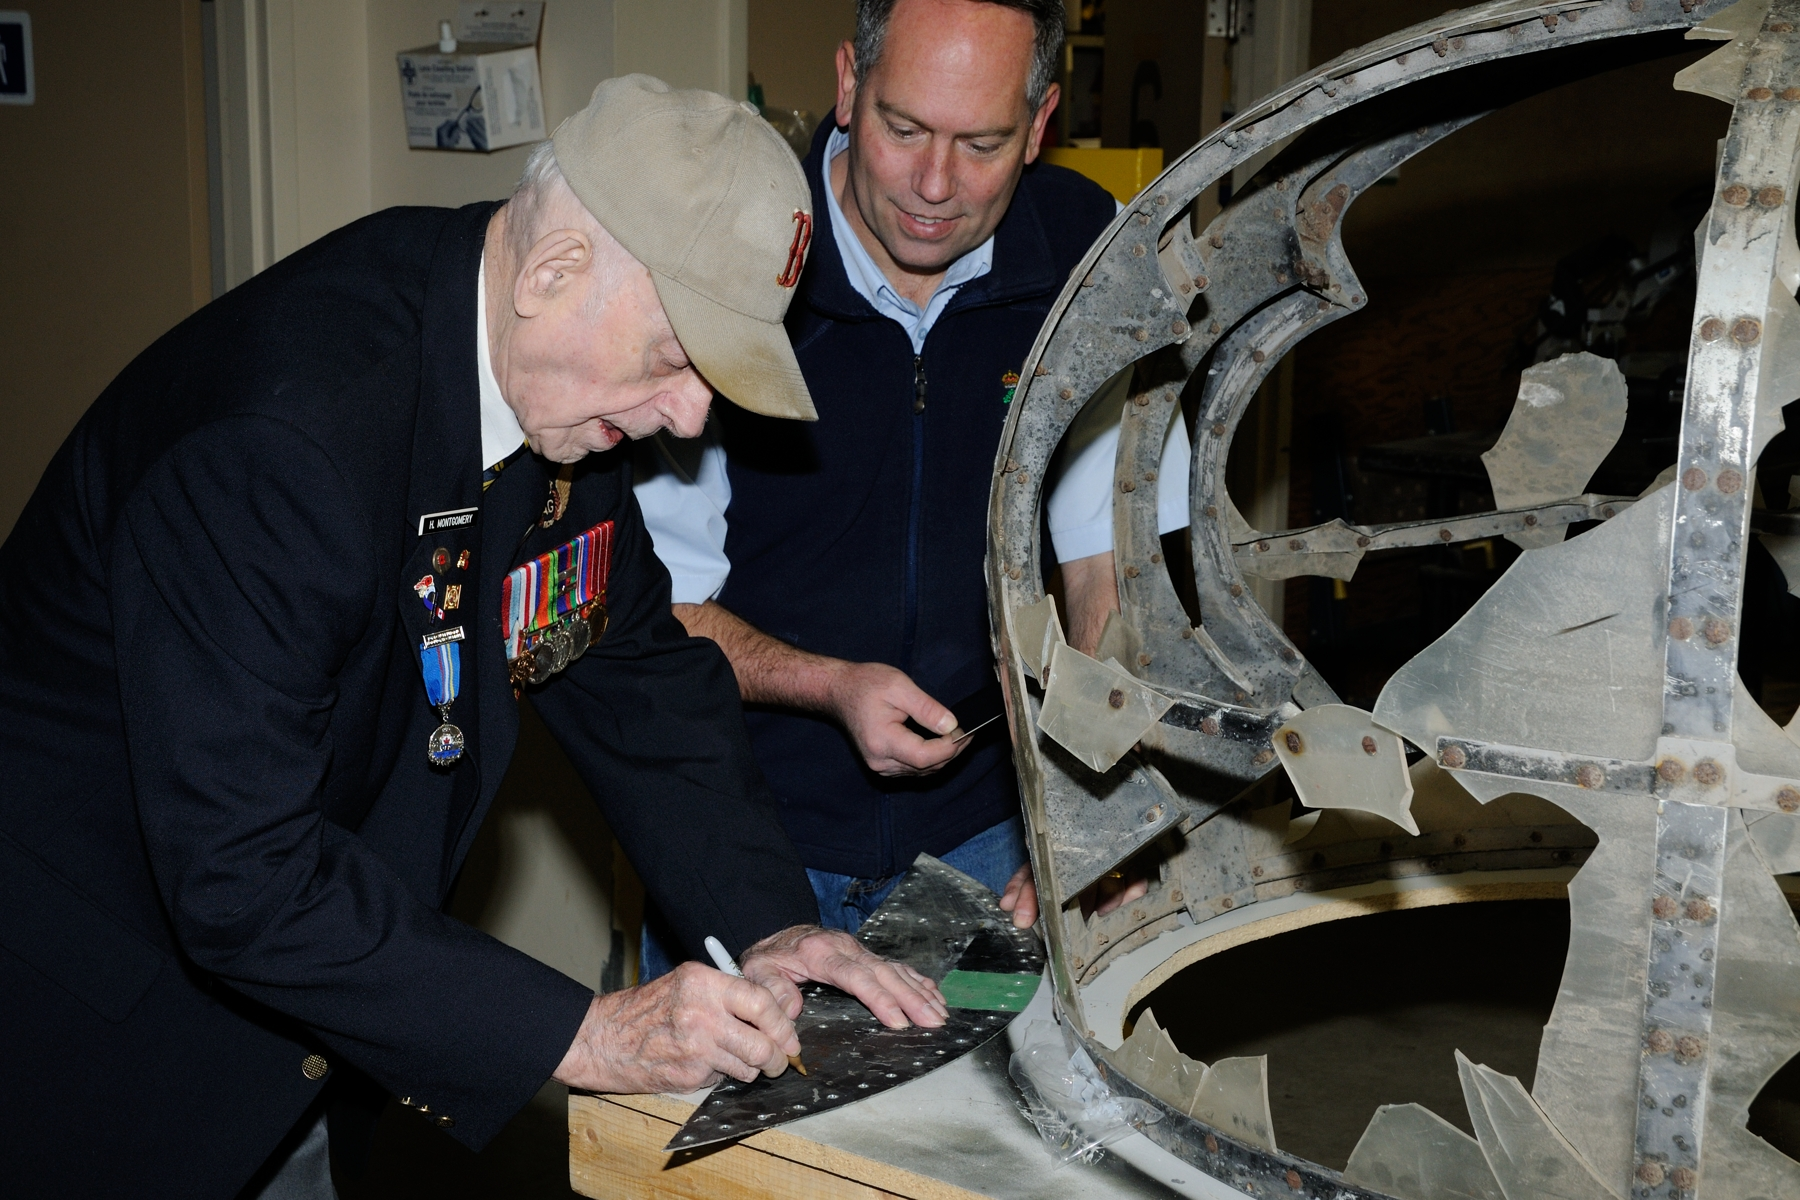 On March 11, 2016, Clark Montgomery, a Second World War Lancaster middle upper gunner from Greenwood, Nova Scotia, signs his name on a plaque that will be a part of the mid-air turret on the restored Lancaster bomber aircraft at the Greenwood Military Aviation Museum. PHOTO: Sergeant Peter Nicholson, GP2016-0036